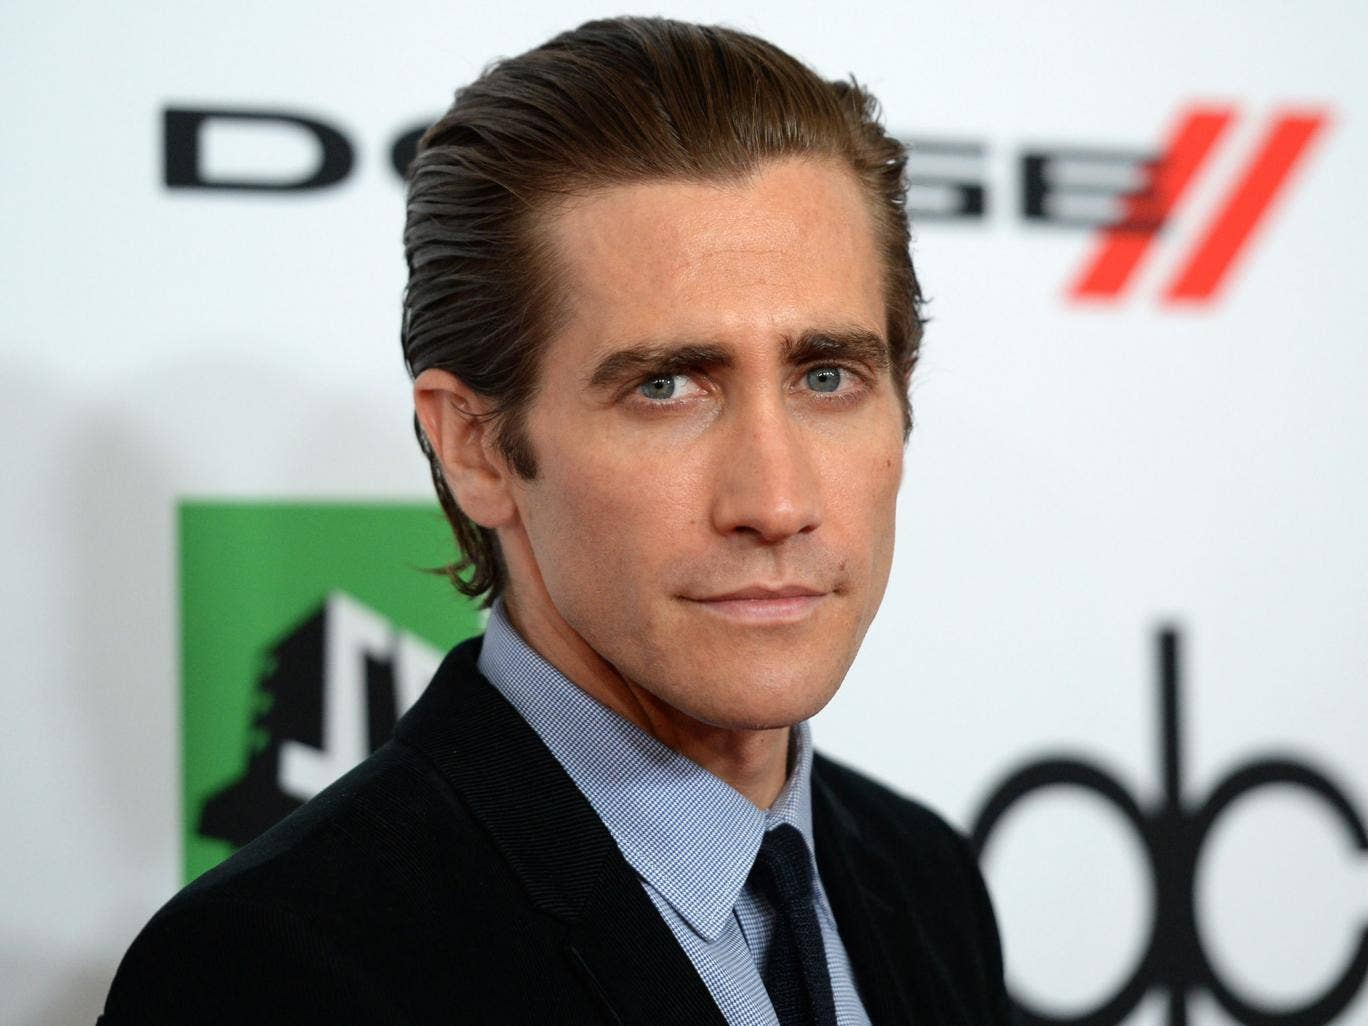 Jake Gyllenhaal has revealed that he gave a terrible audition for the part of Frodo in Lord of the Rings